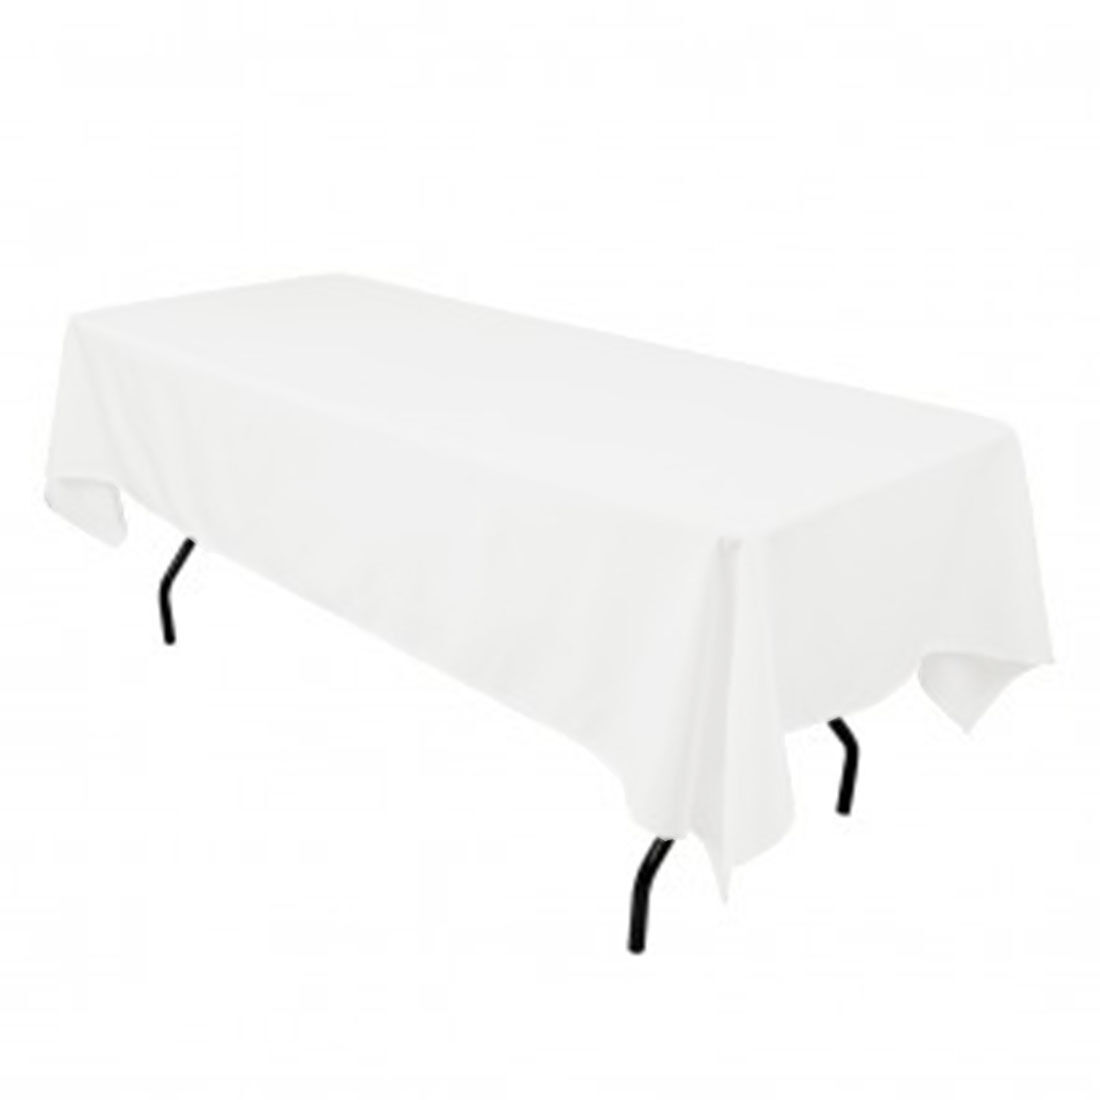 Tablecloth Polyester Rectangular 60x120 Inch By Broward Line